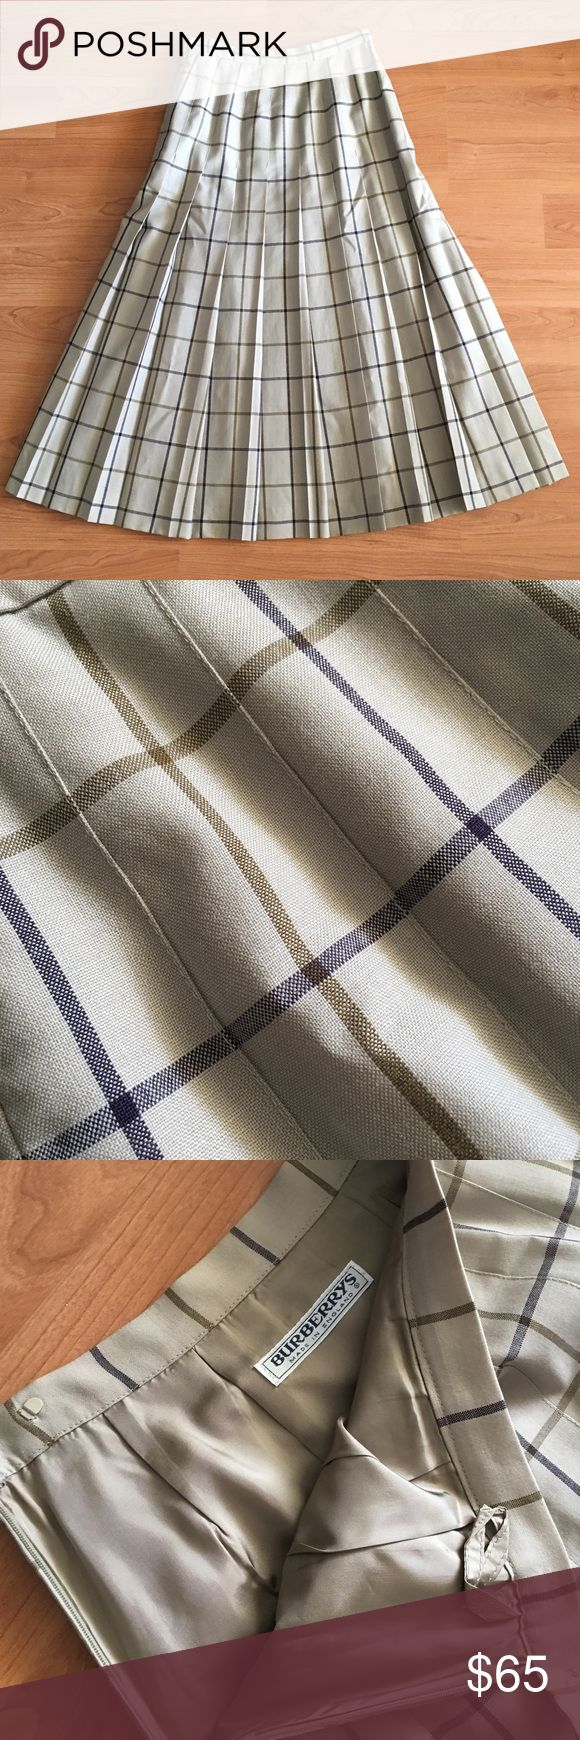 """Burberry England long pleated skirt 100% wool Great Burberry England skirt! Pleated with Side Zipped. Lined. No tag for size but appears to fit size 2. Laying flat: waist- 12"""" length- 32"""". A few tiny blemishes. Thanks! Burberry Skirts A-Line or Full"""